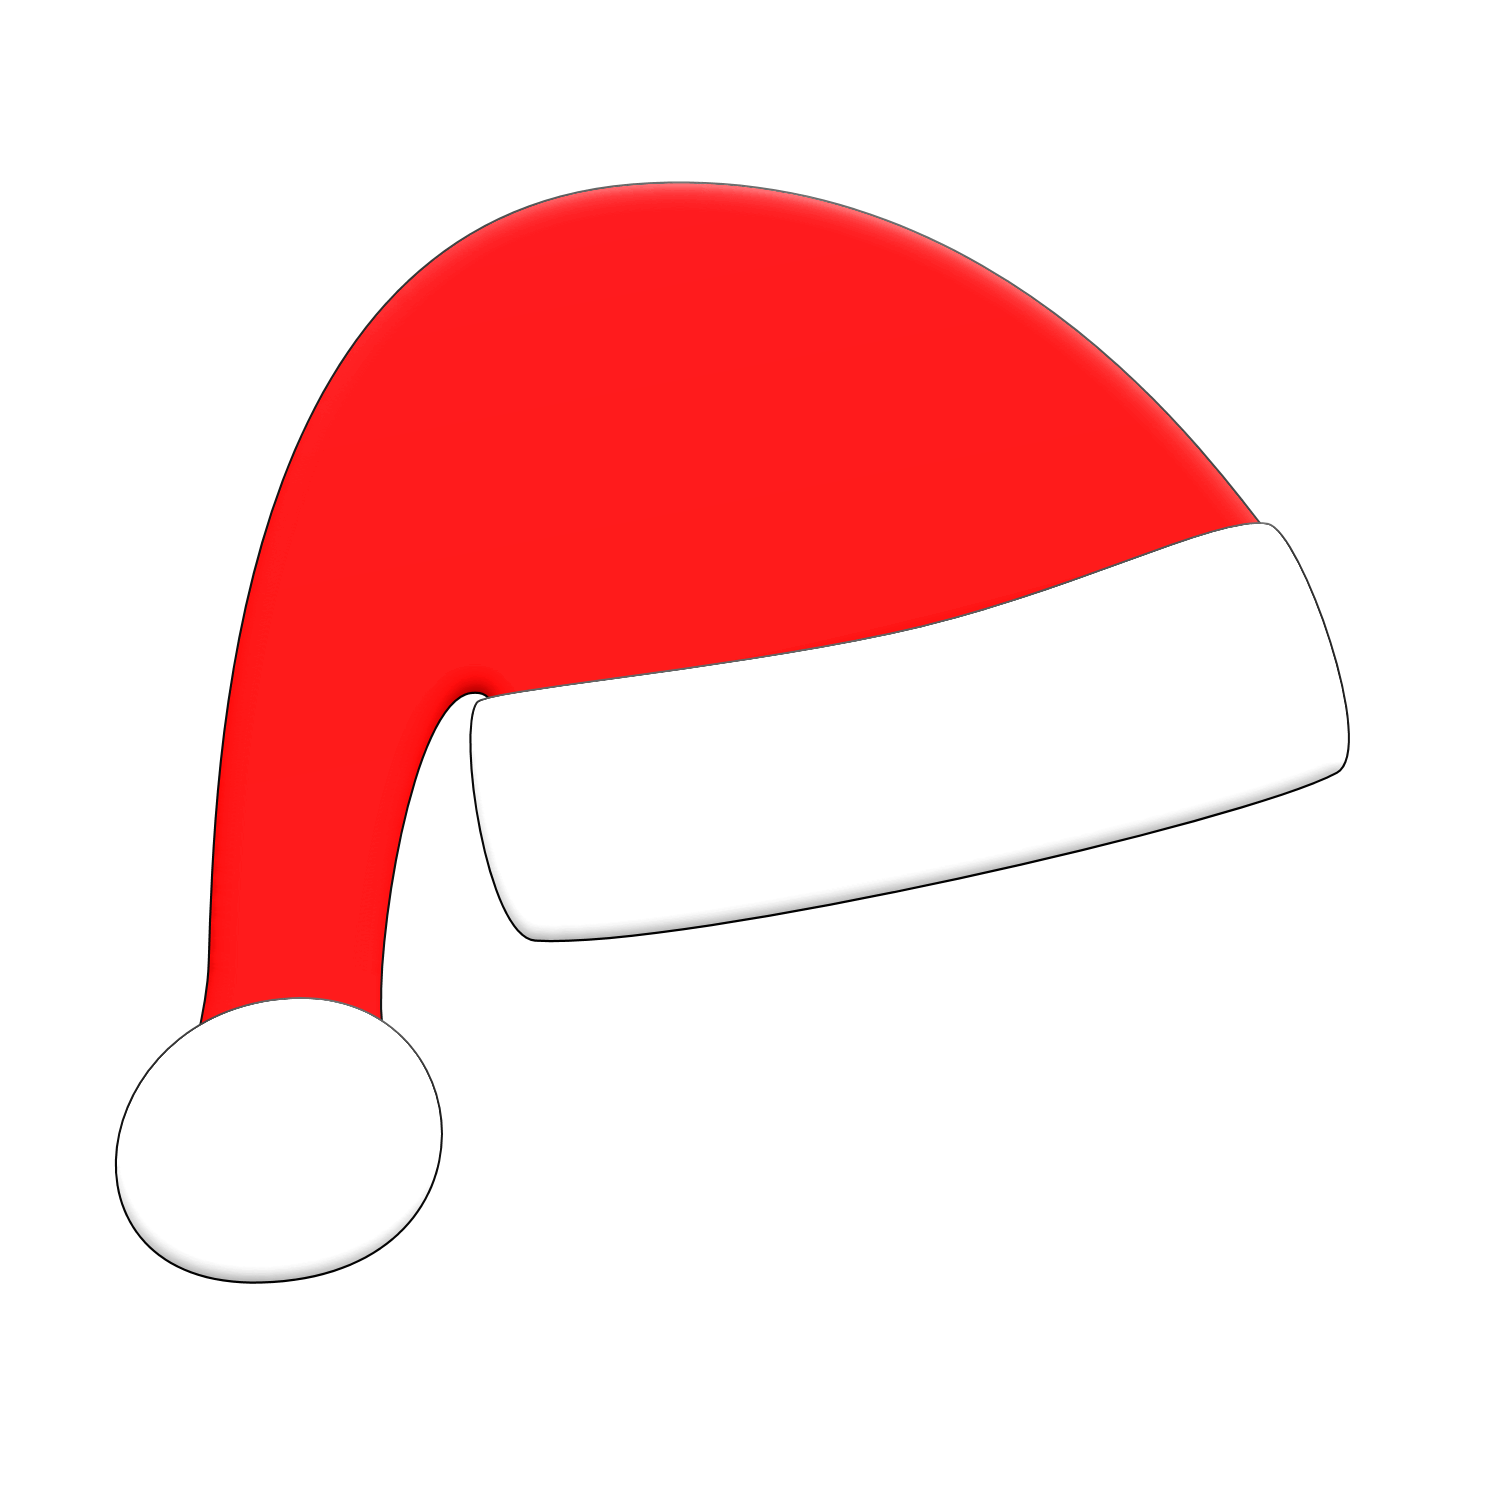 Santa Hat Clipart Clipart Kid-Santa hat clipart clipart kid-4